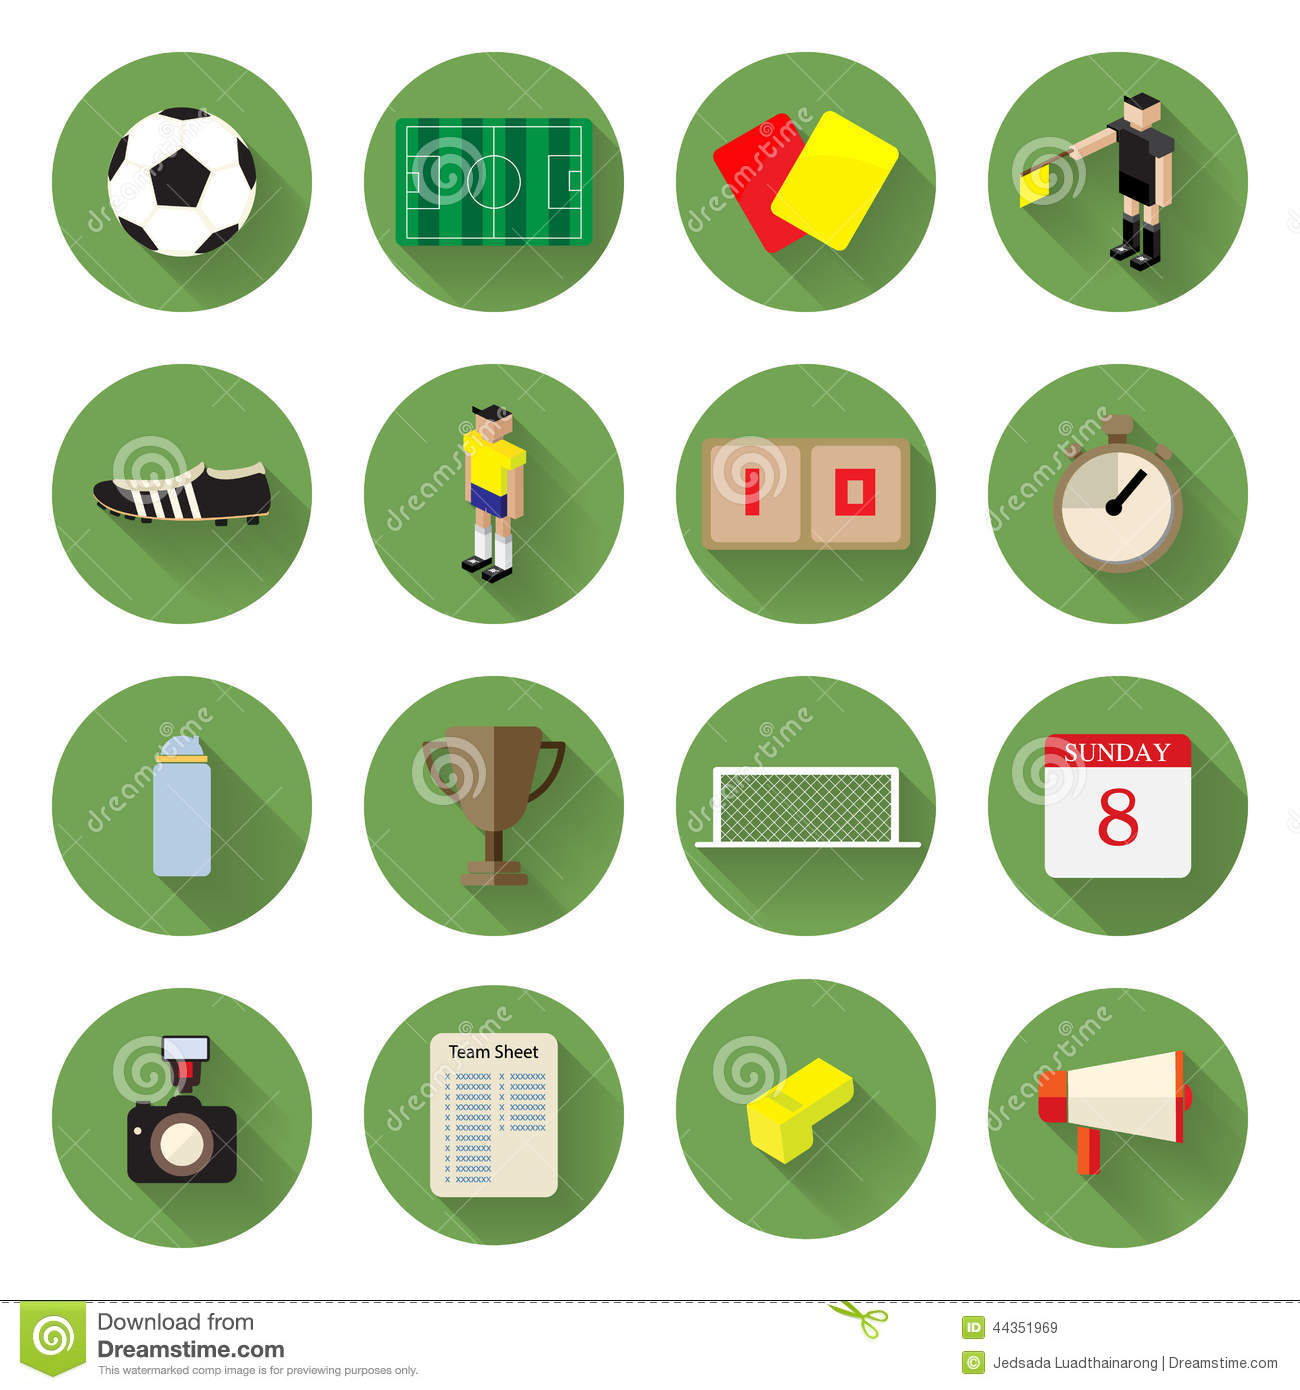 Soccer Football Icons Set Flat Design With Long Shadow